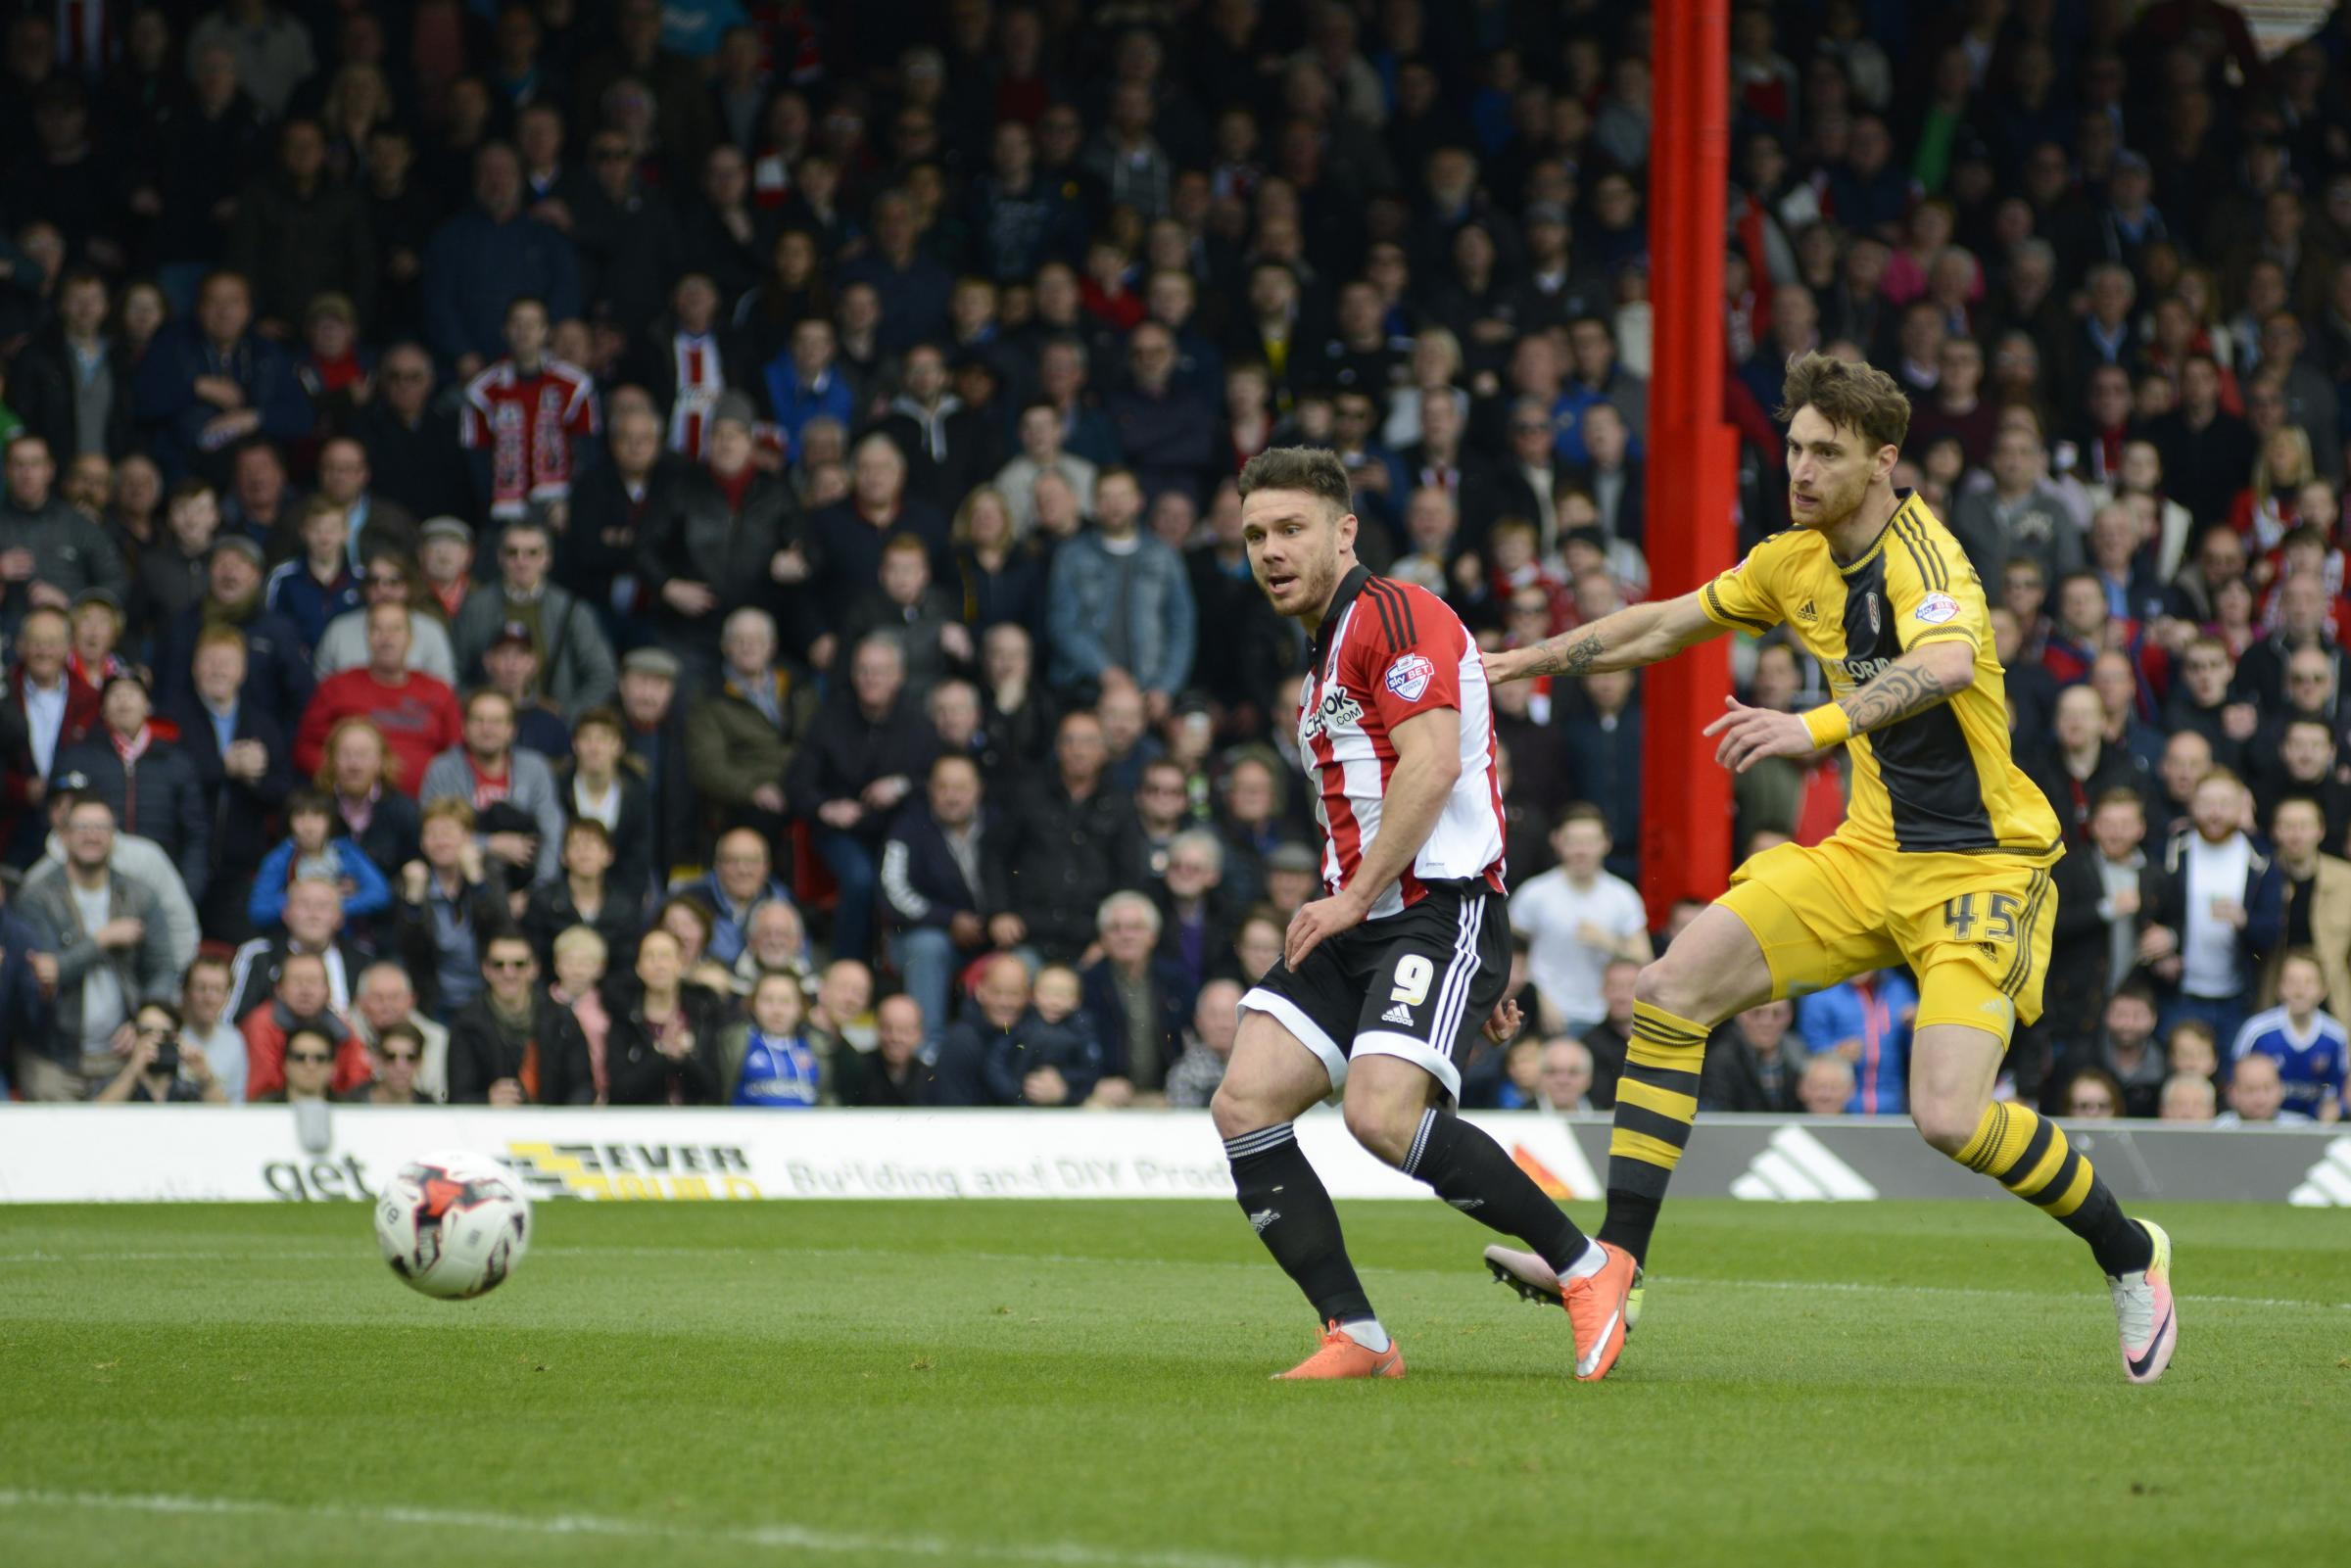 Dominant force: Bees striker Scott Hogan scores in a 3-0 win over Fulham at Griffin Park last season